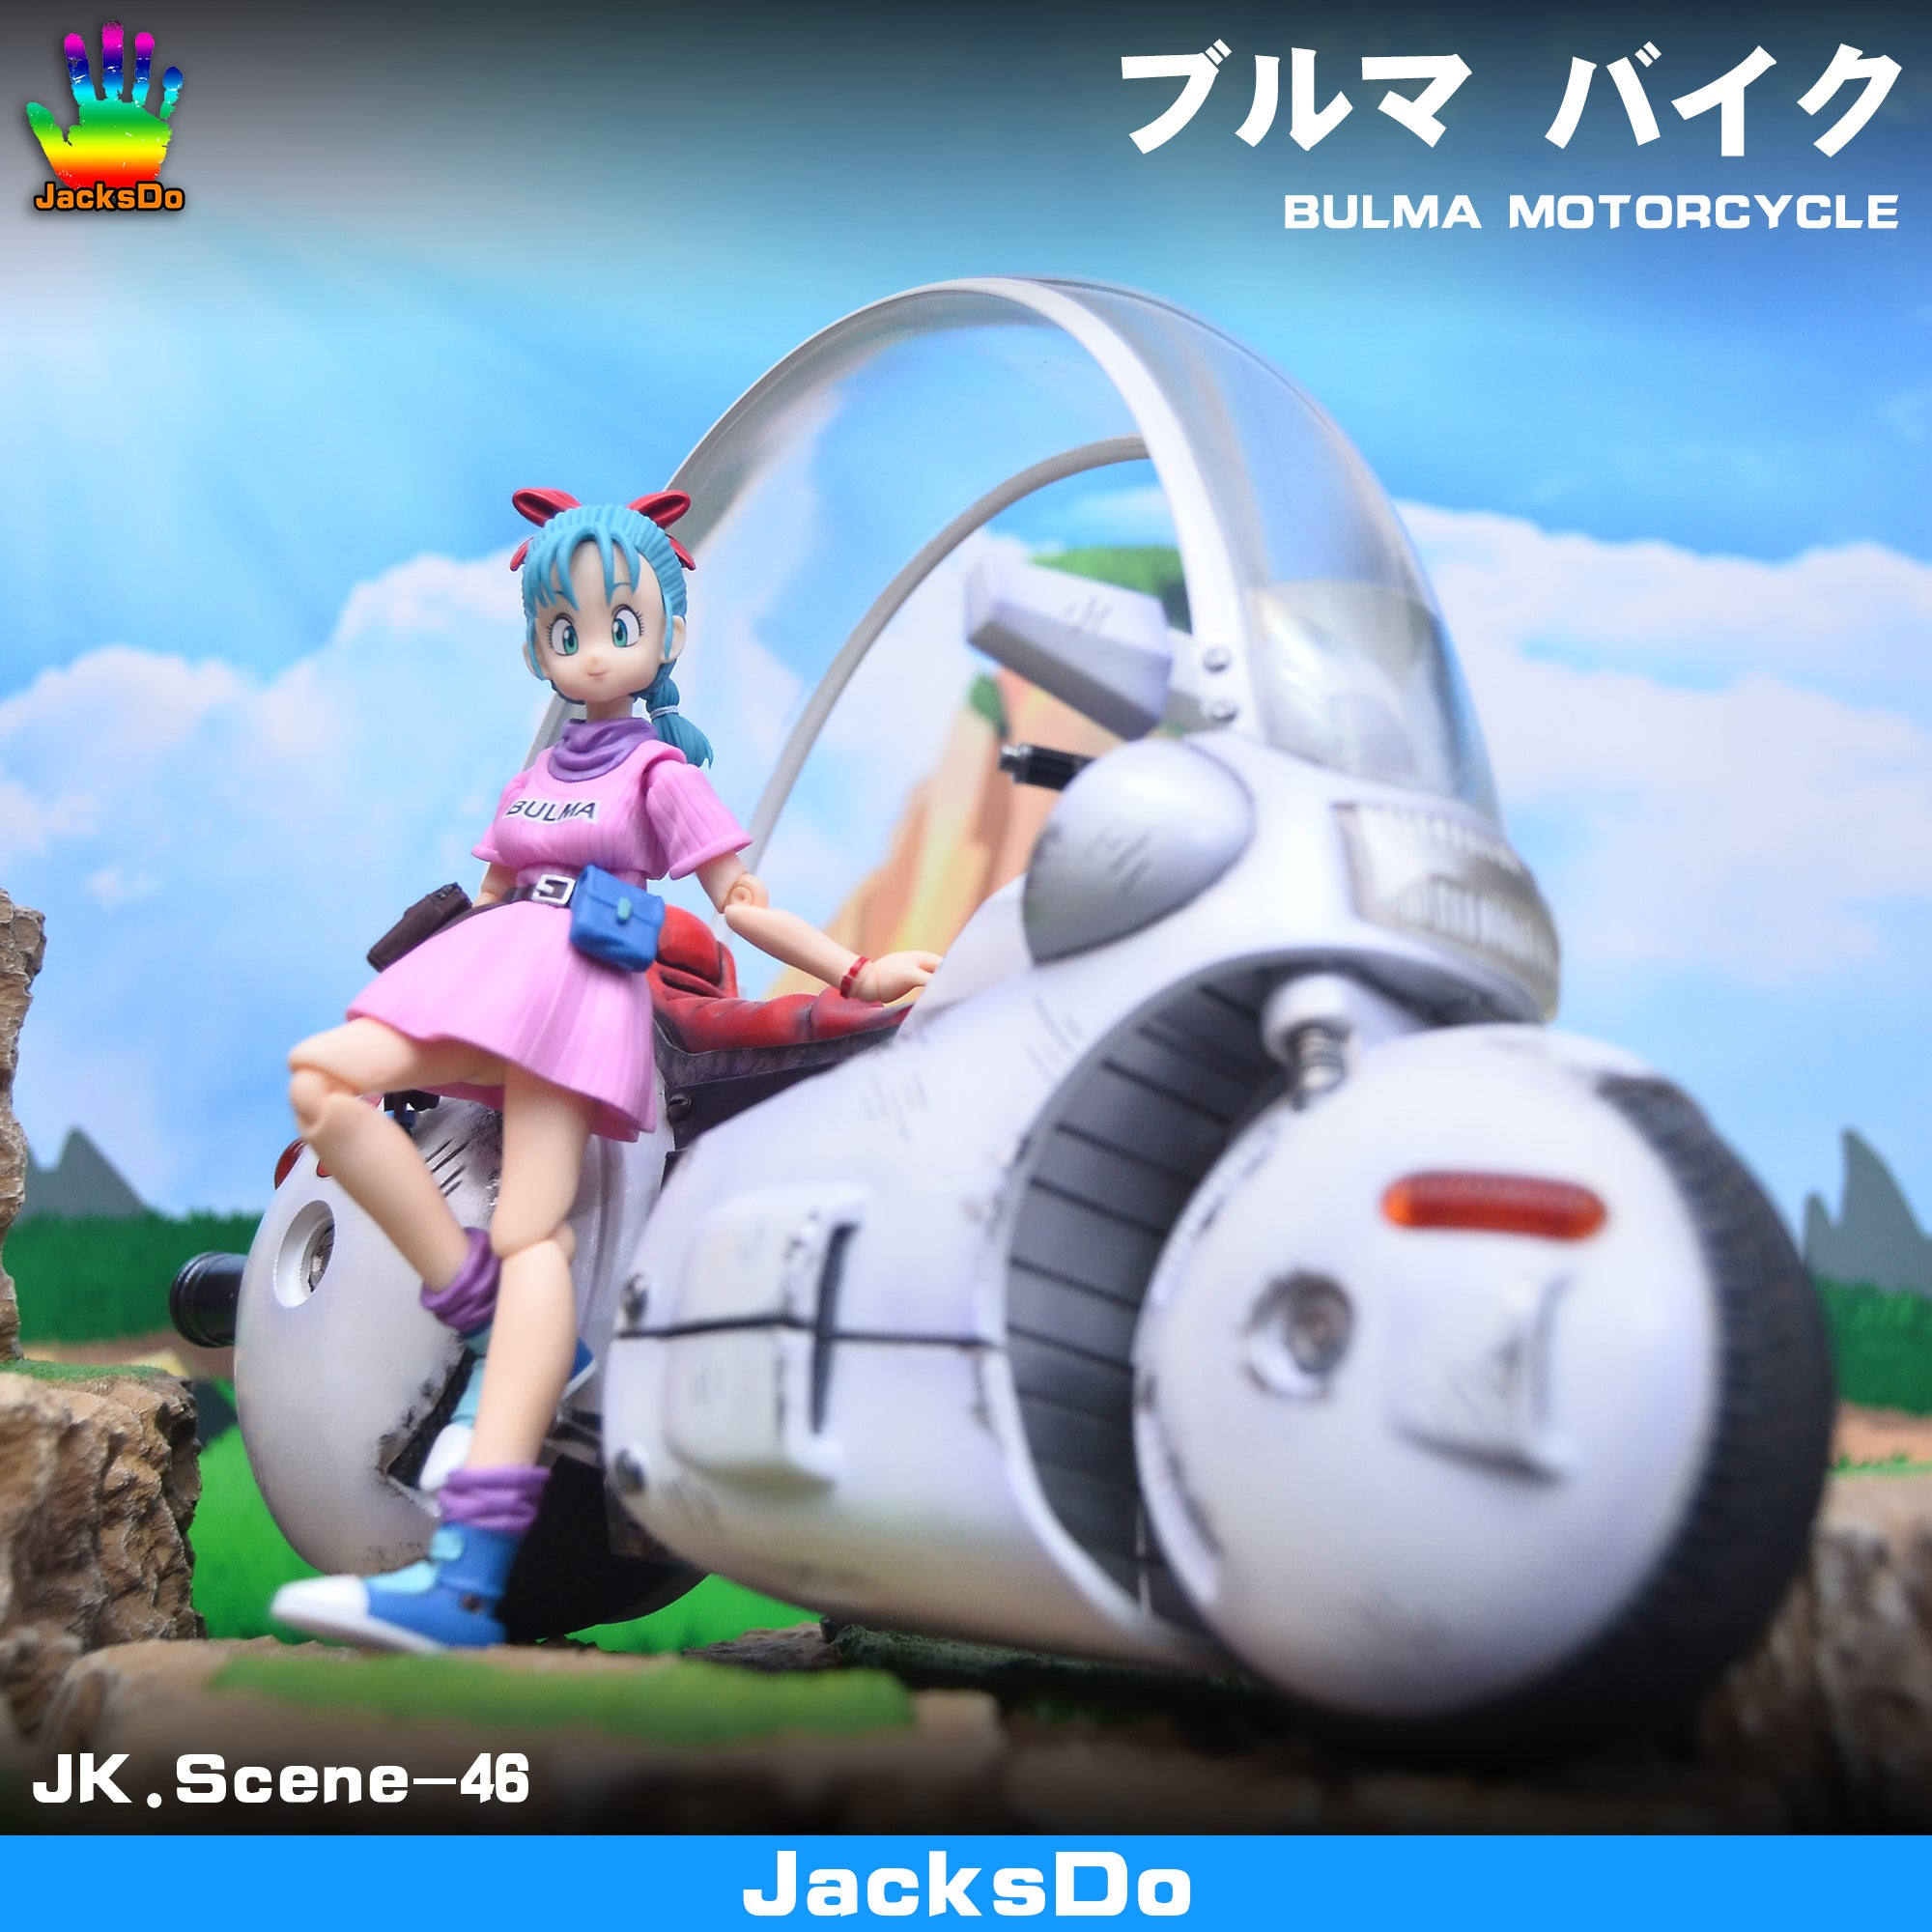 JacksDo Dragon Ball Z Bulma Motorcycle Resin Statue